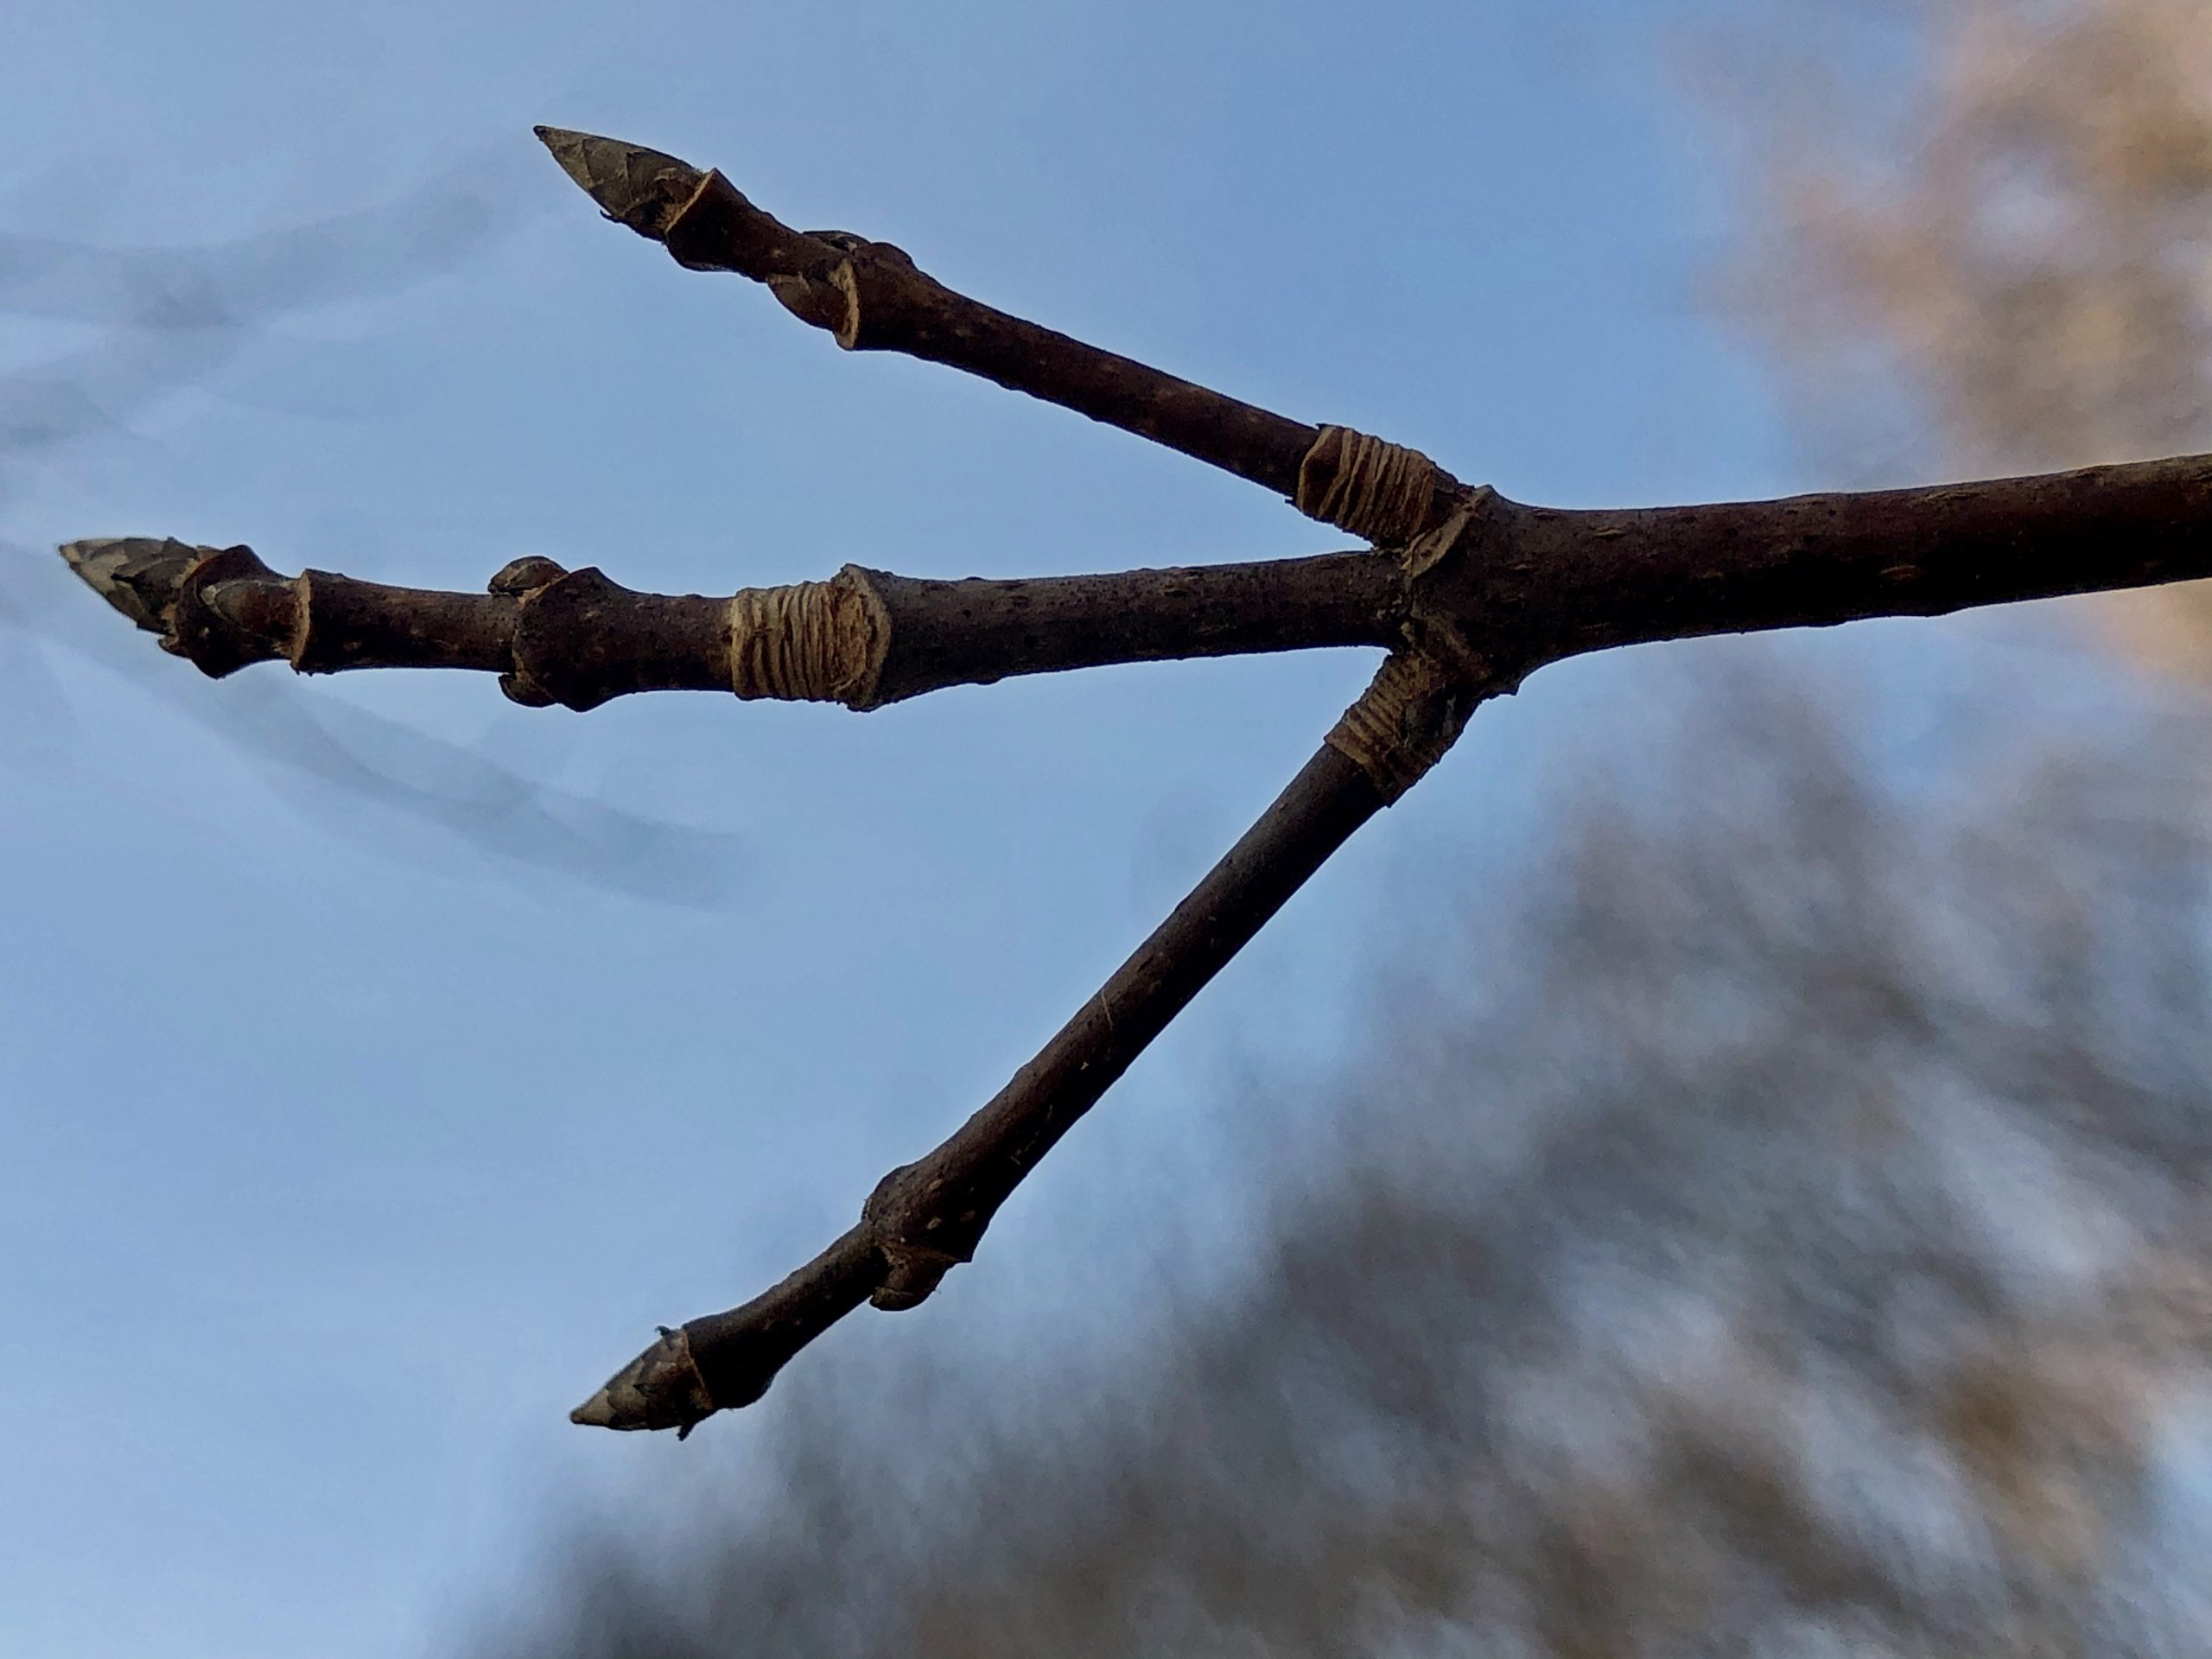 Close up of Acer saccharum or Sugar Maple twig and bud for winter tree ID